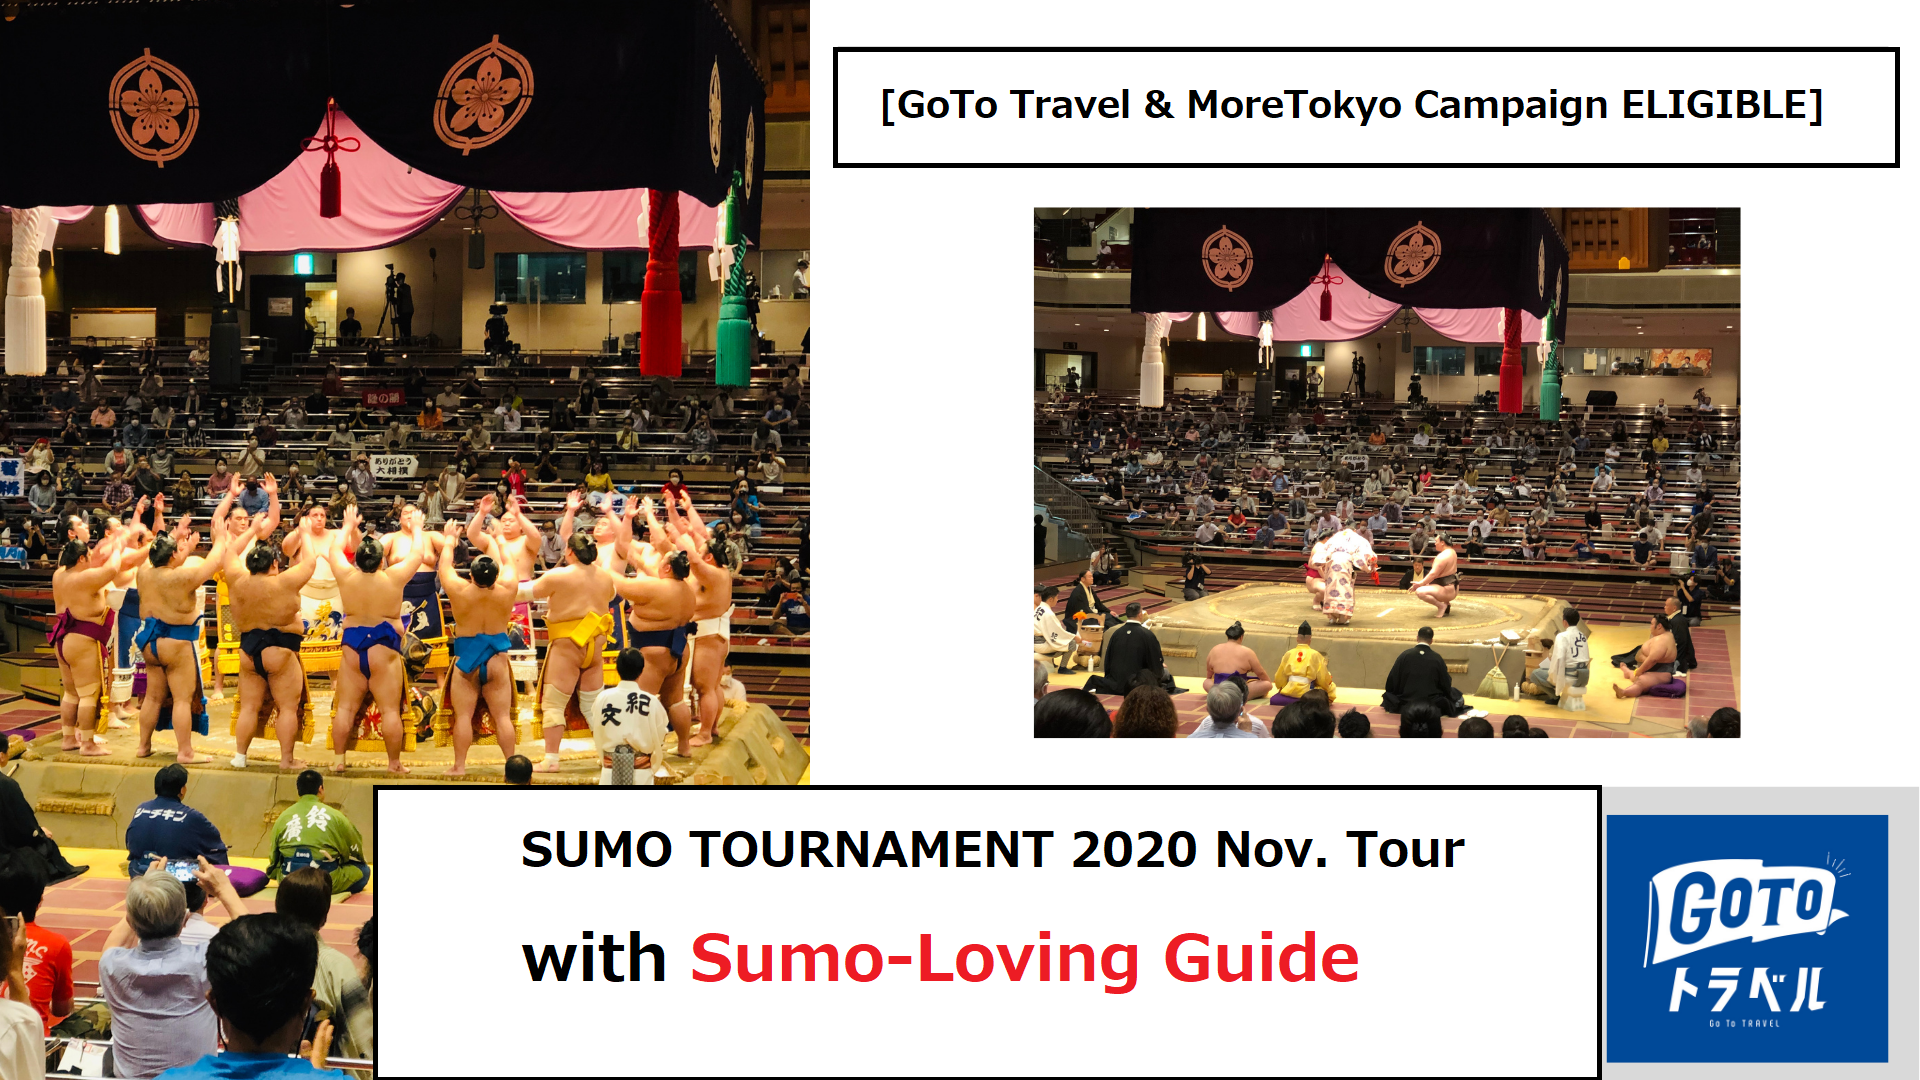 SUMO TOURNAMENT 2020 Nov. Tour with Sumo-Loving Guide [GoTo Travel & MoreTokyo Campaign ELIGIBLE]